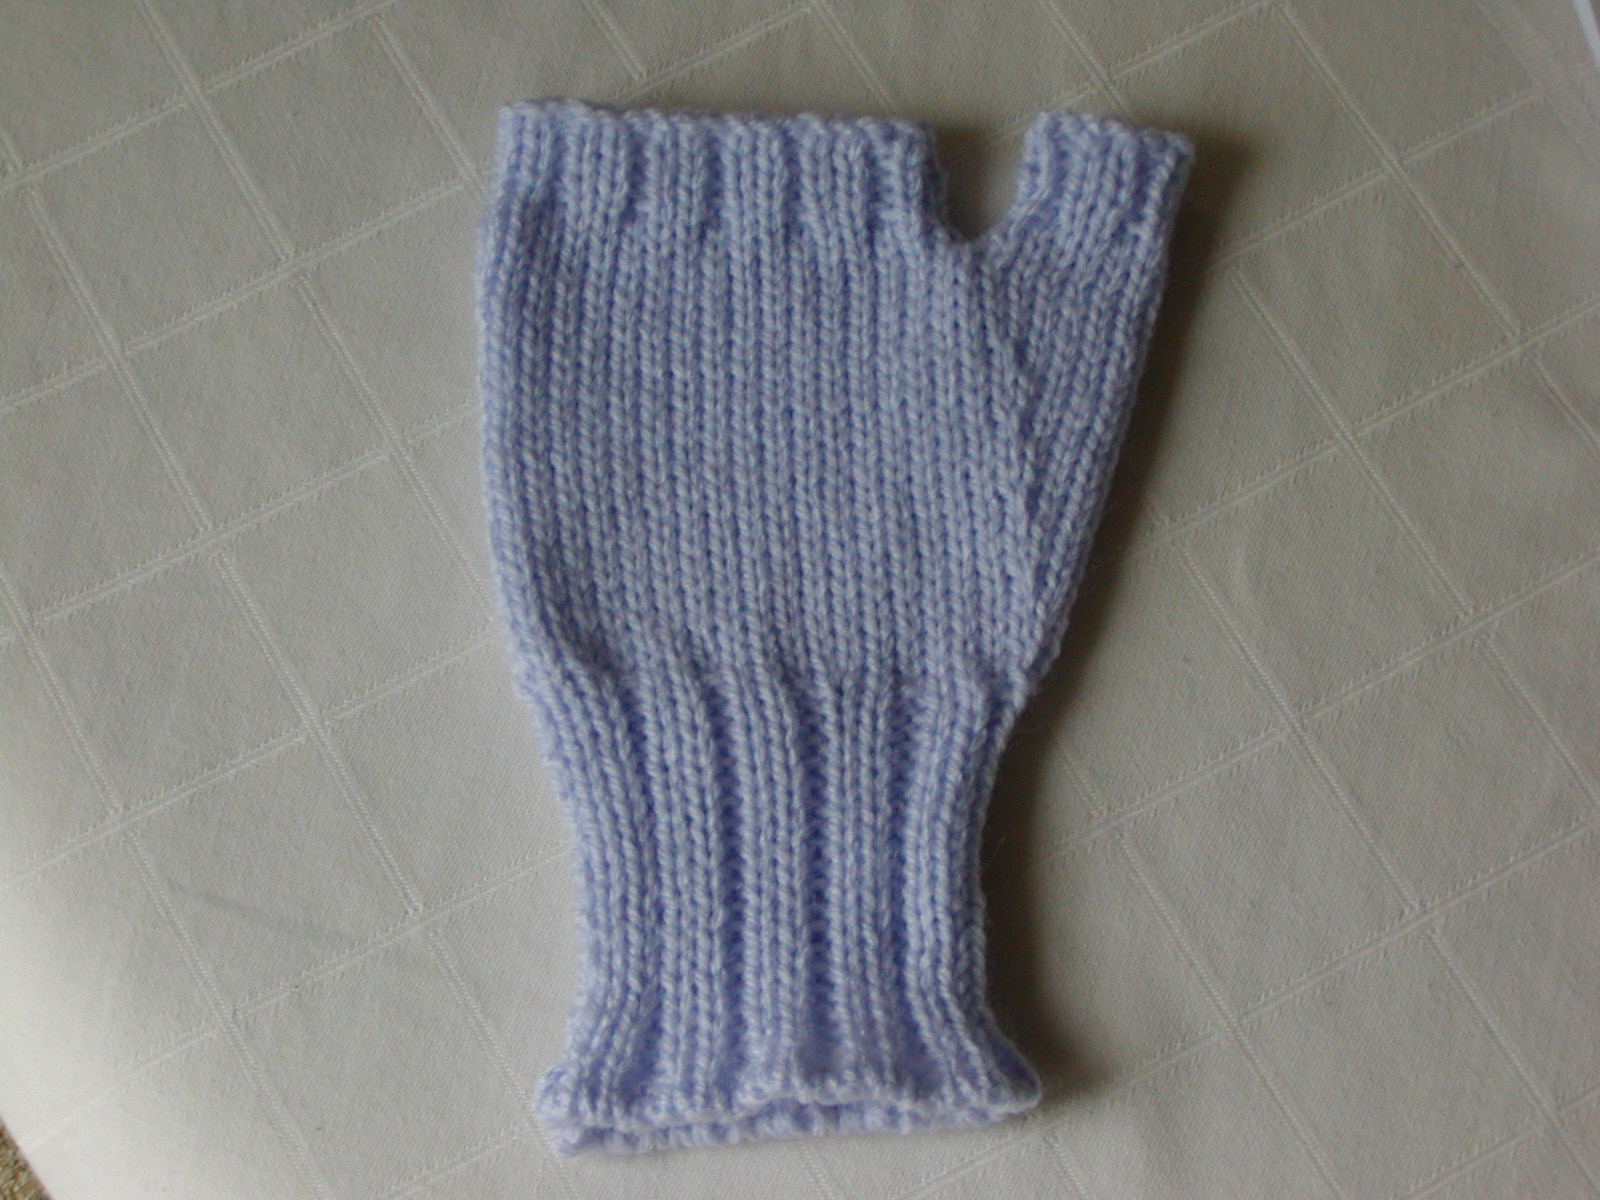 Knitting Pattern Of Gloves : Addicted to Machine Knitting: Fingerless Gloves Machine Knitting Pattern